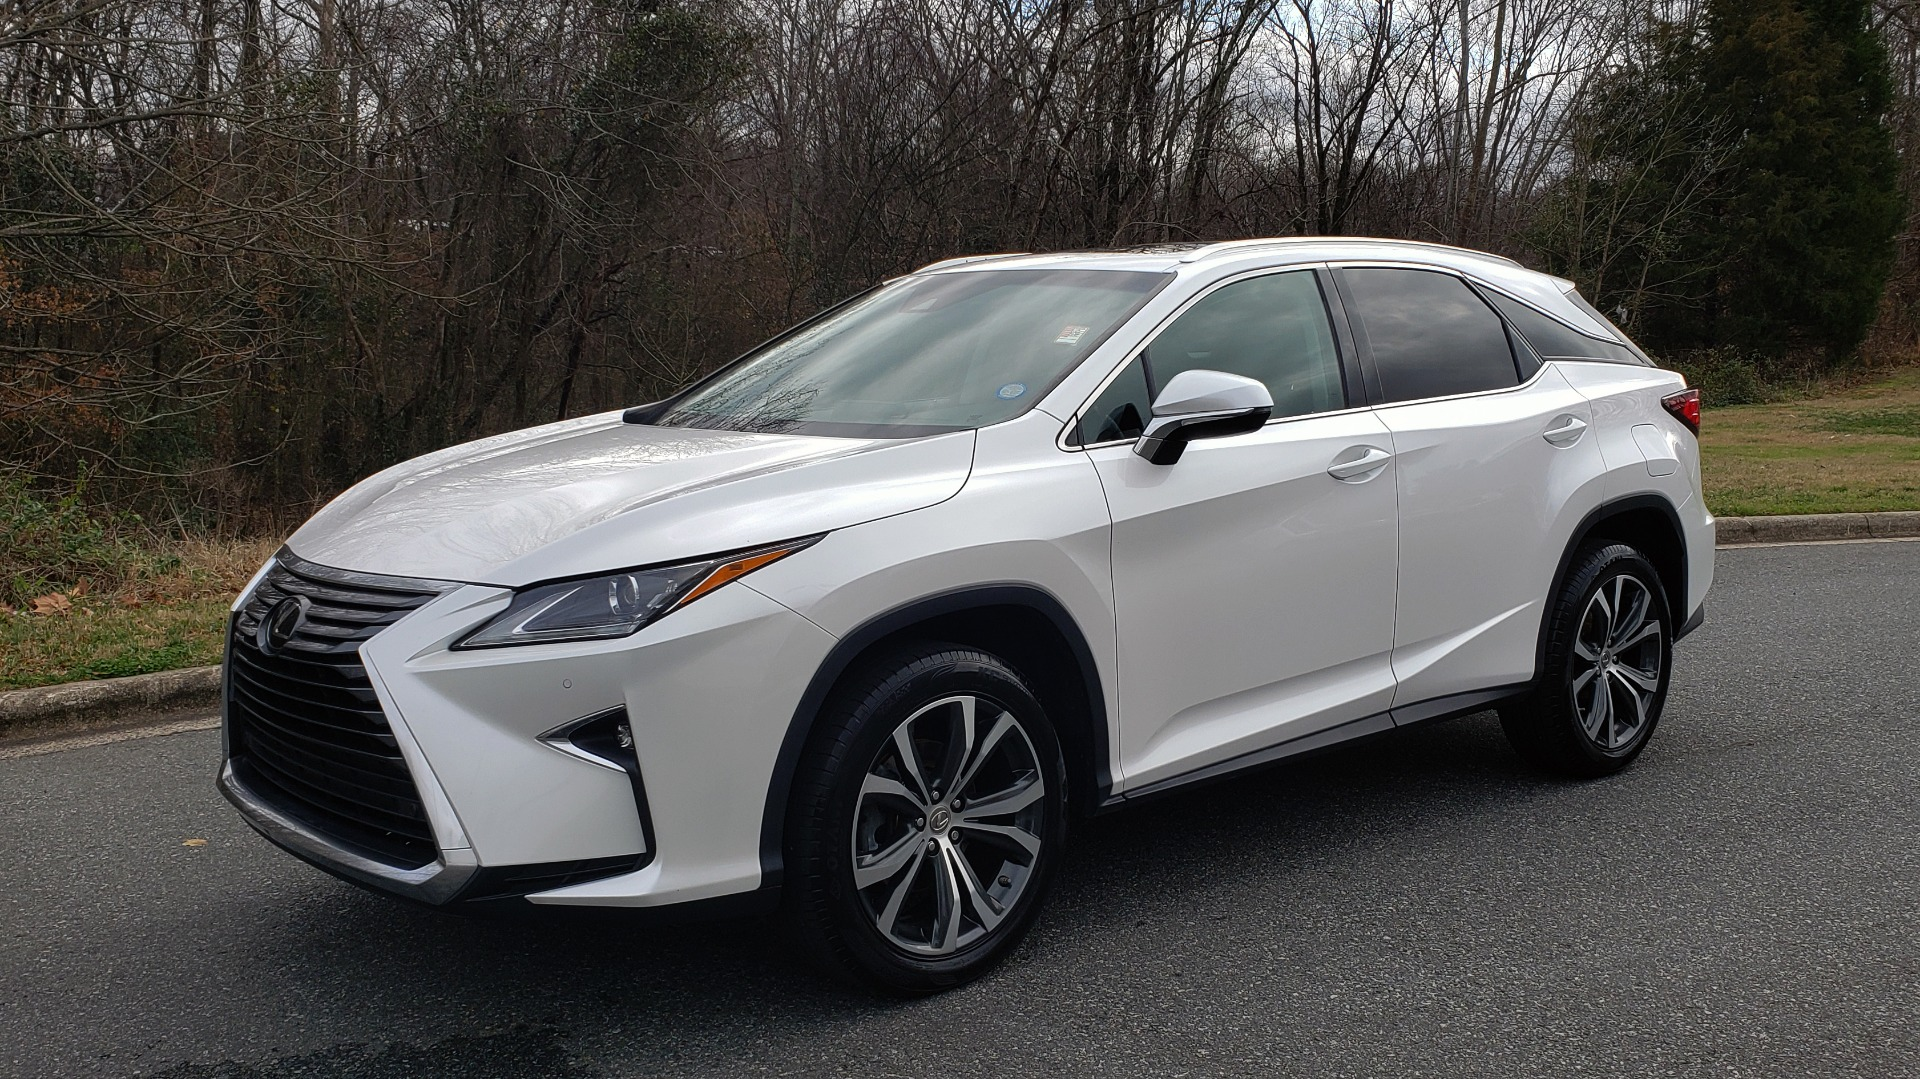 Used 2017 Lexus RX 350 PREMIUM / BSM / SNRF / VENT SEATS / REARVIEW for sale Sold at Formula Imports in Charlotte NC 28227 1